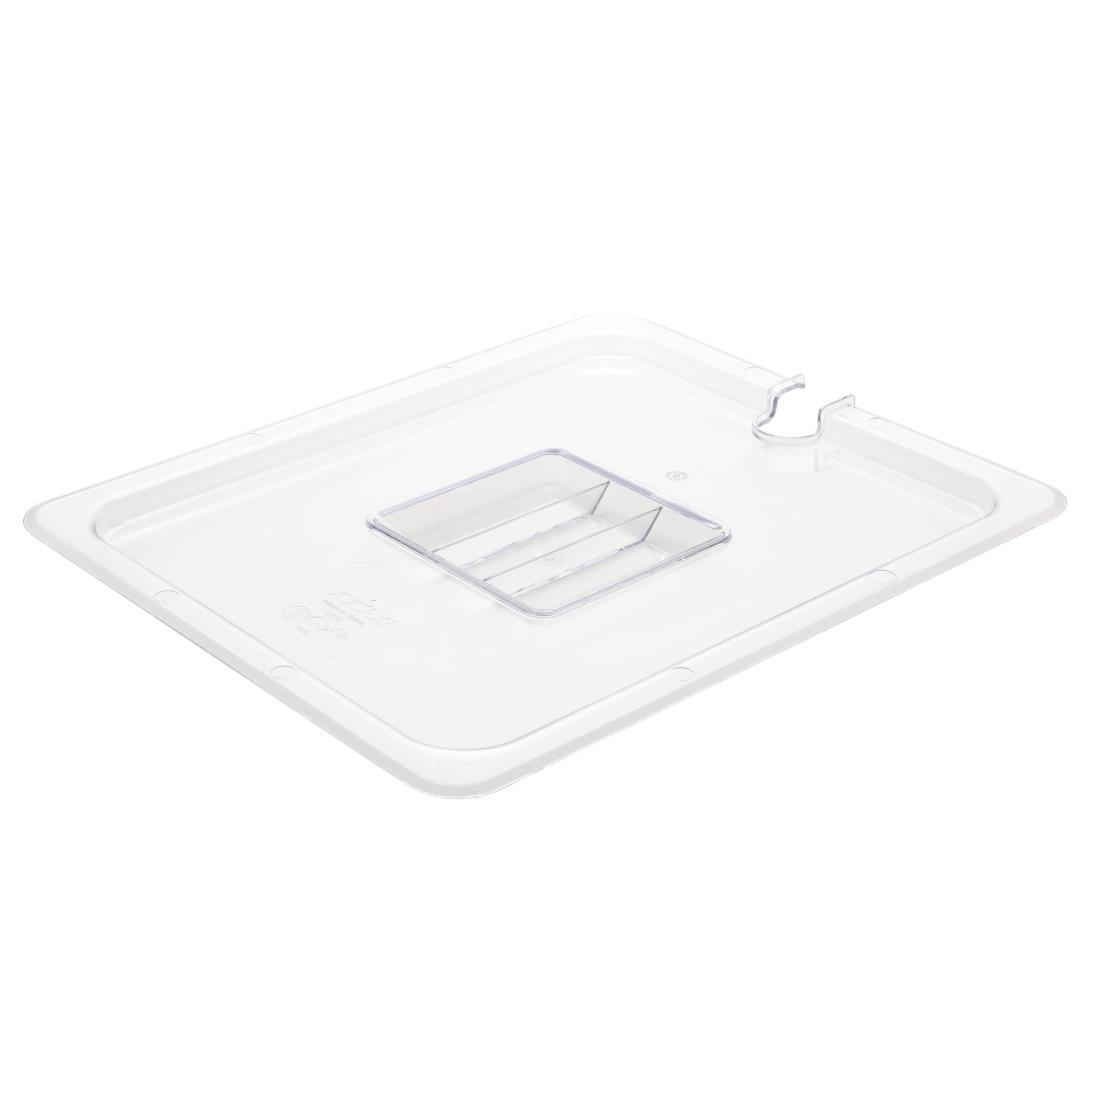 Vogue Polycarbonate 1/2 Gastronorm Lid Notched - U251